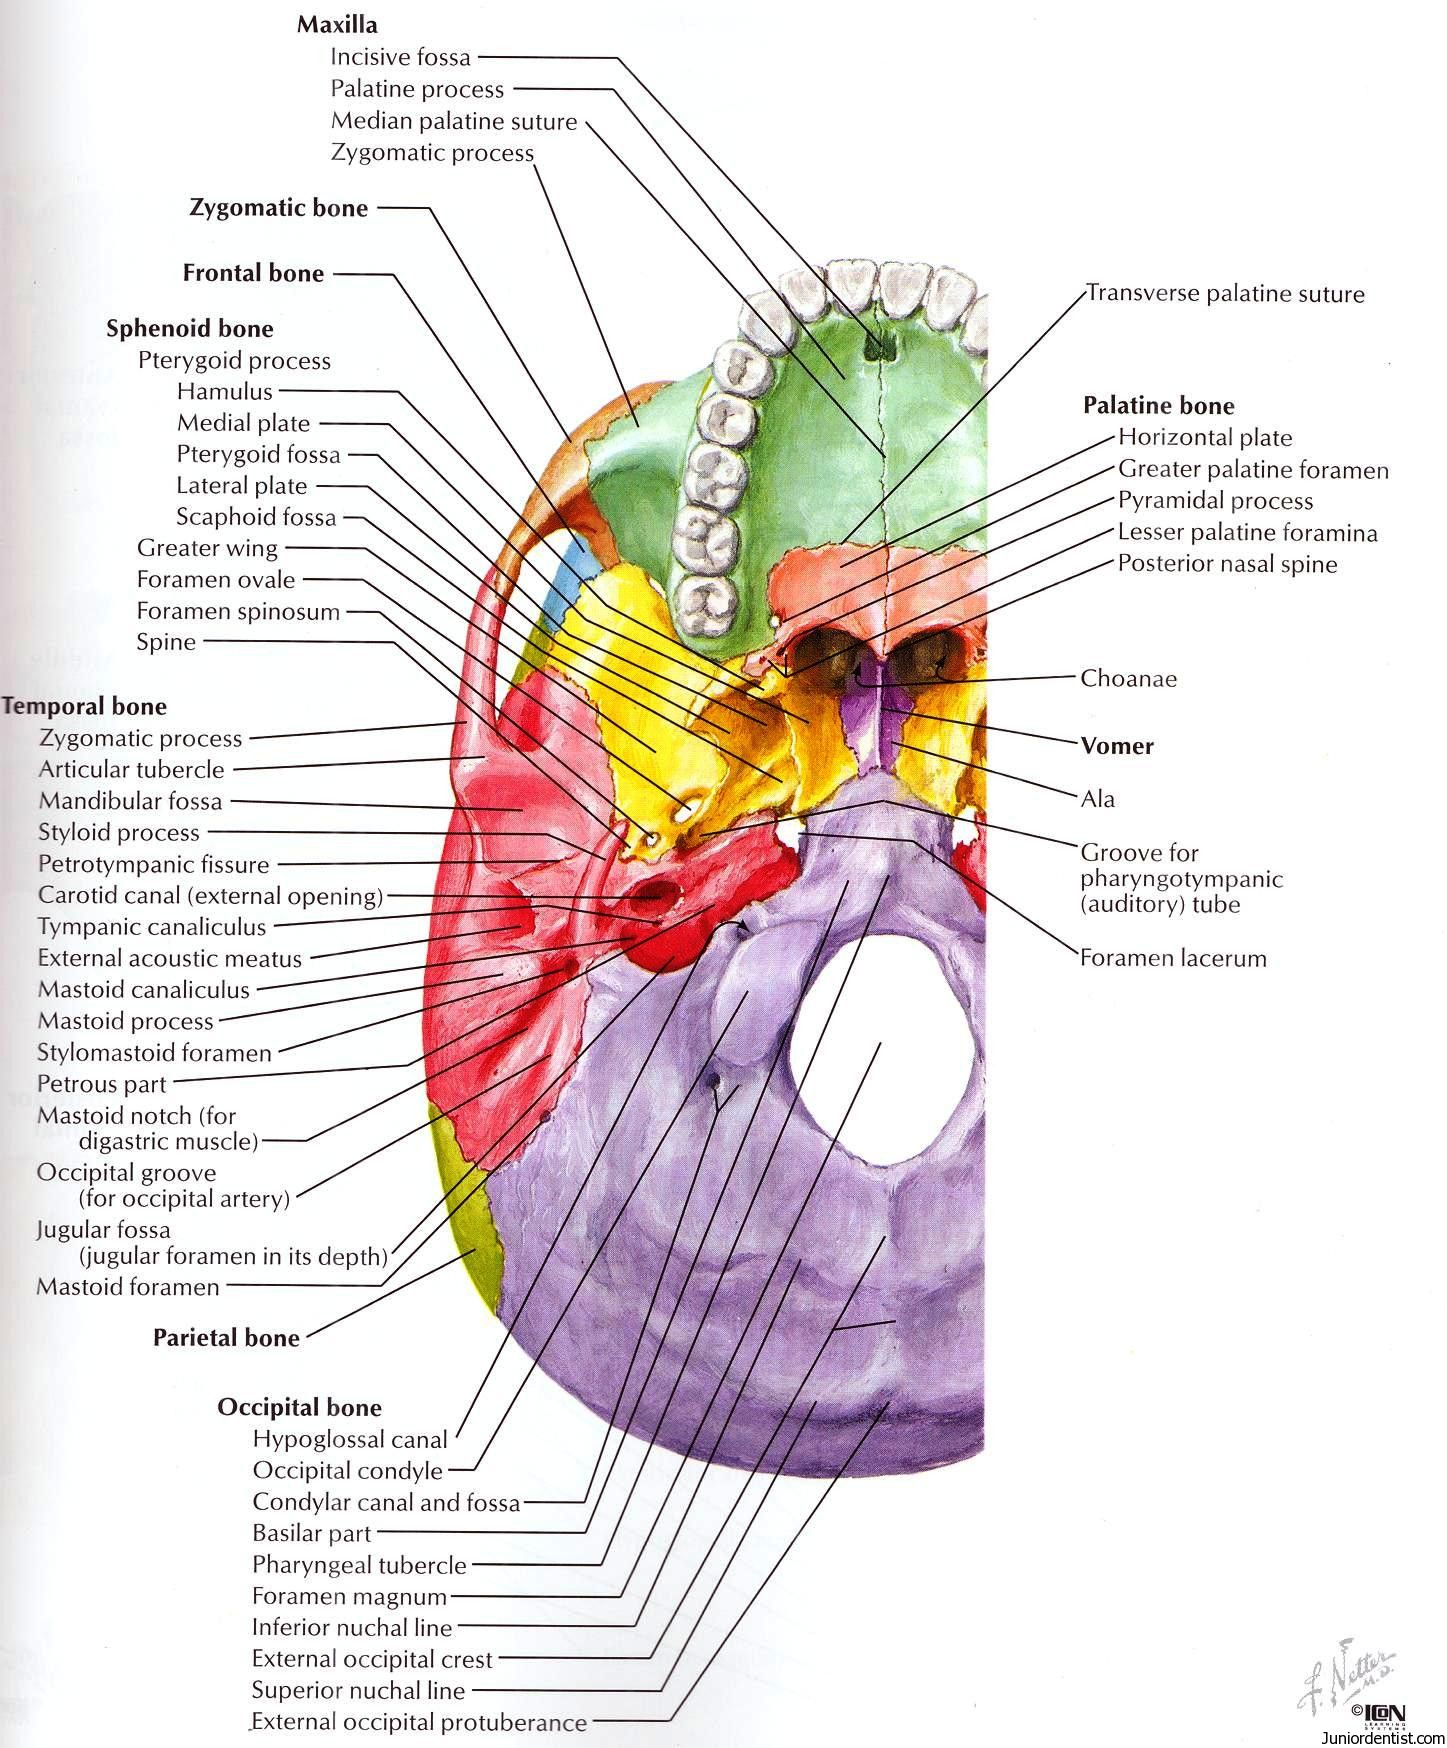 Structures Passing Trough Foramen Of Skull Foramen Of Skull